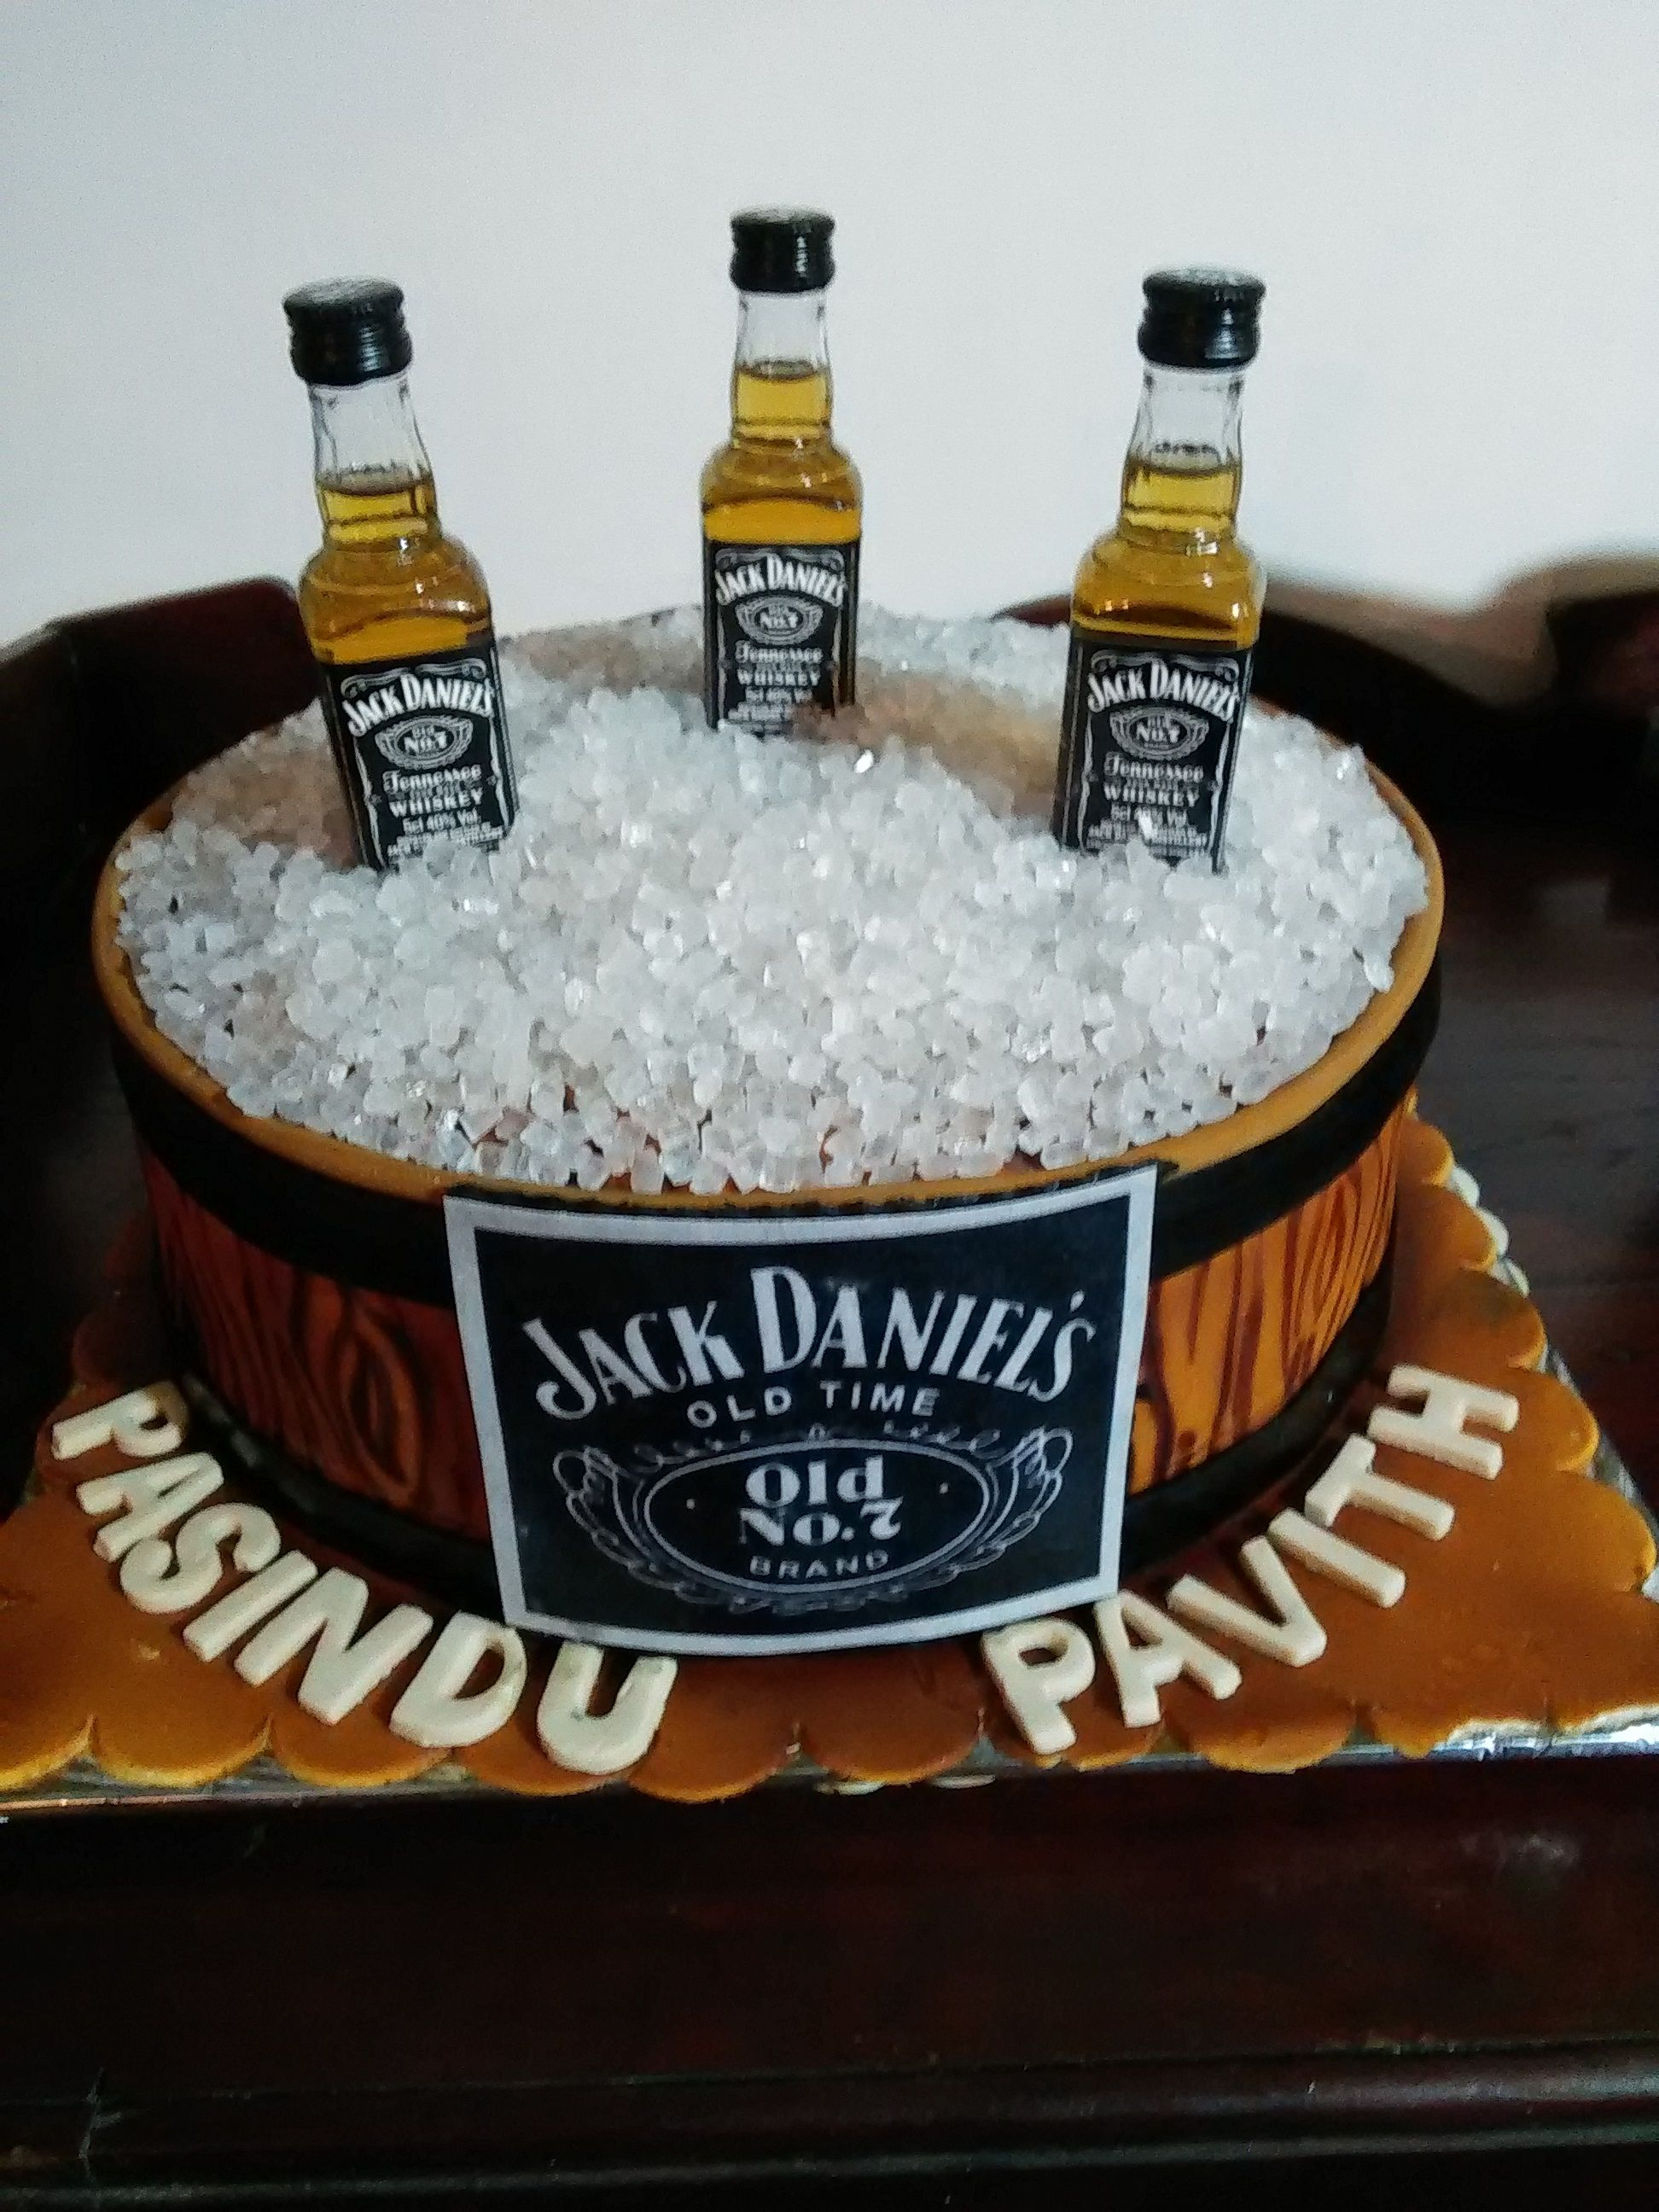 Incredible Jack Daniels Theme For Those Who Enjoy Their Drinks Birthday Cake Personalised Birthday Cards Paralily Jamesorg